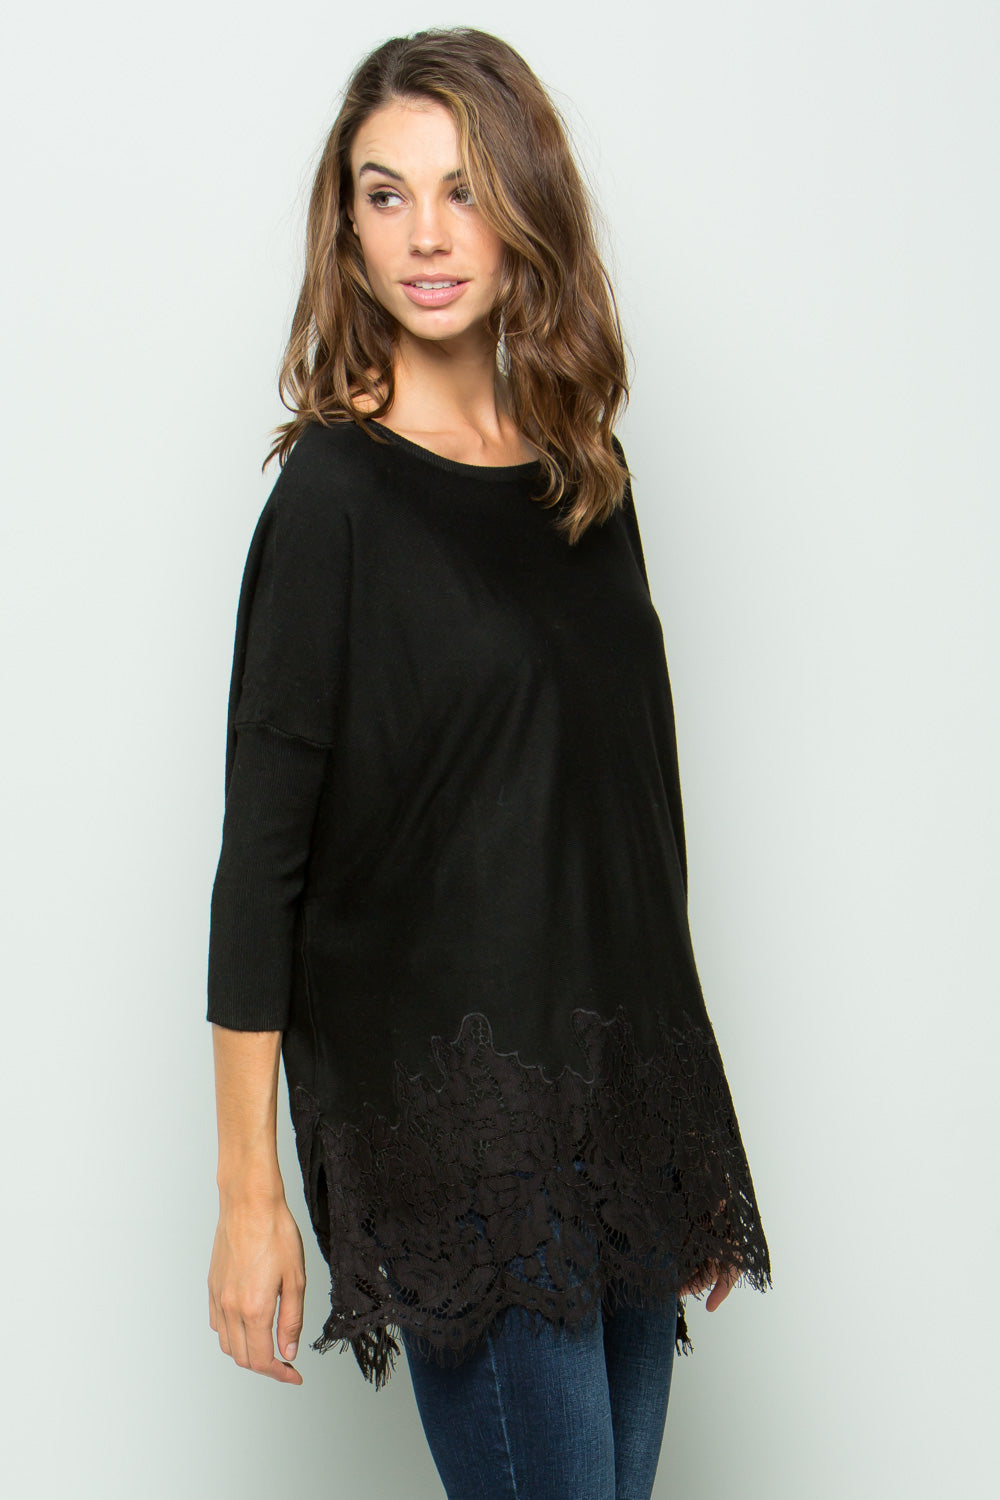 SW6001 Lace Trim Sweater - Black